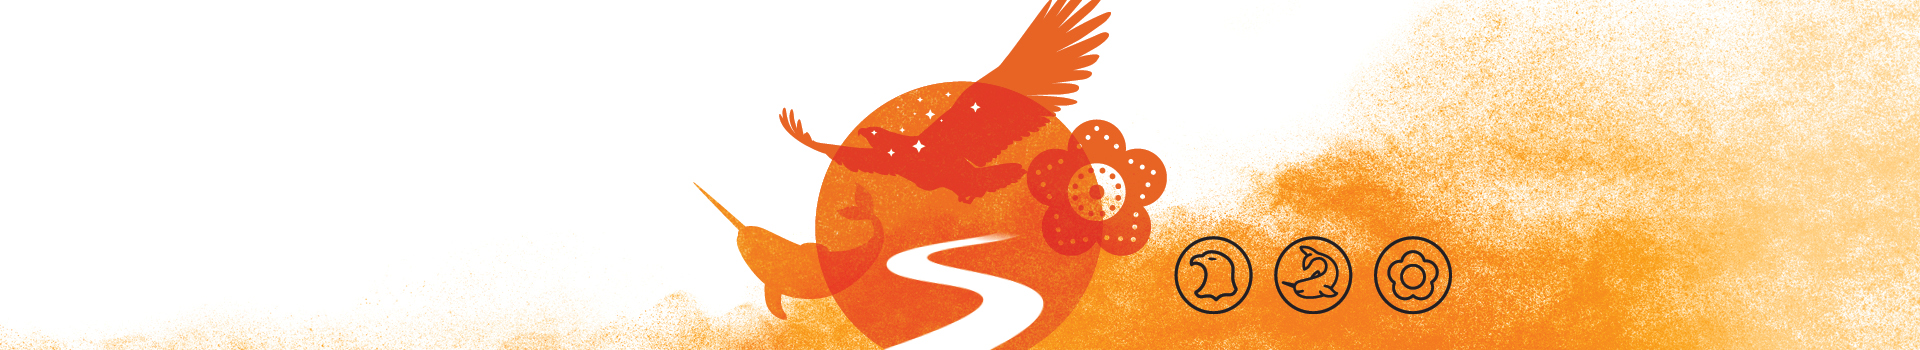 National Day for Truth and Reconciliation - Orange Banner